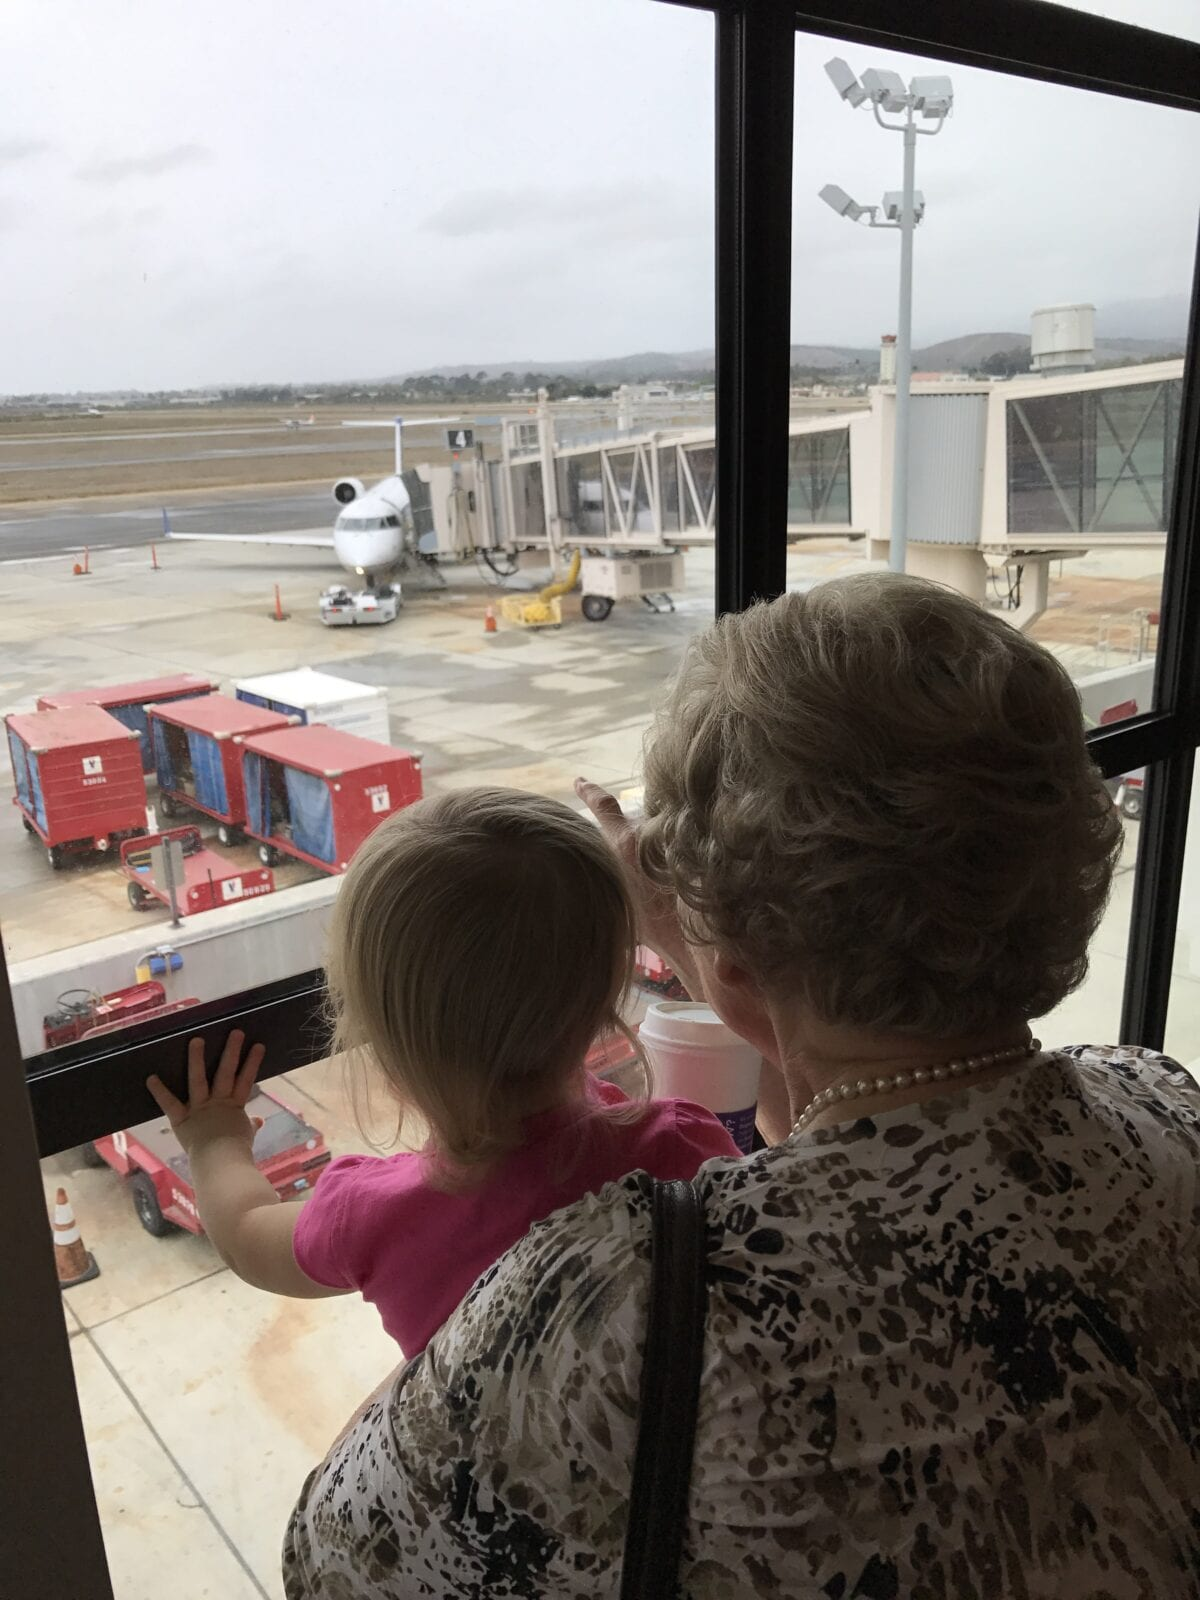 Grandma holding child up to window in airport image.